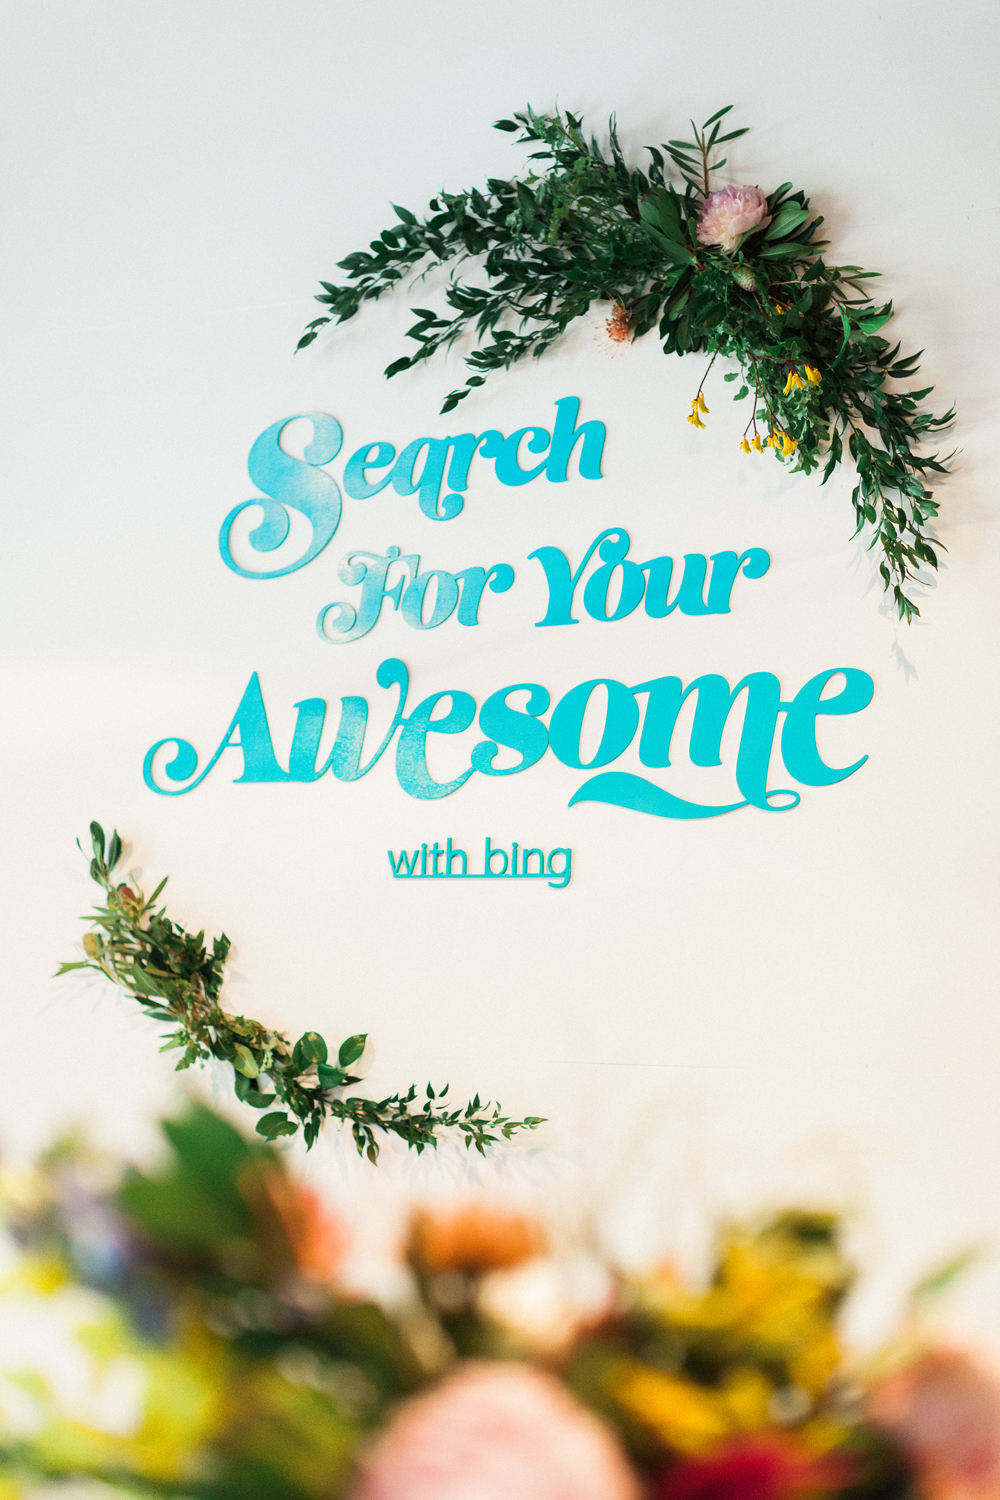 Bing Search for Your Awesome_Homespun ATL_061.jpg